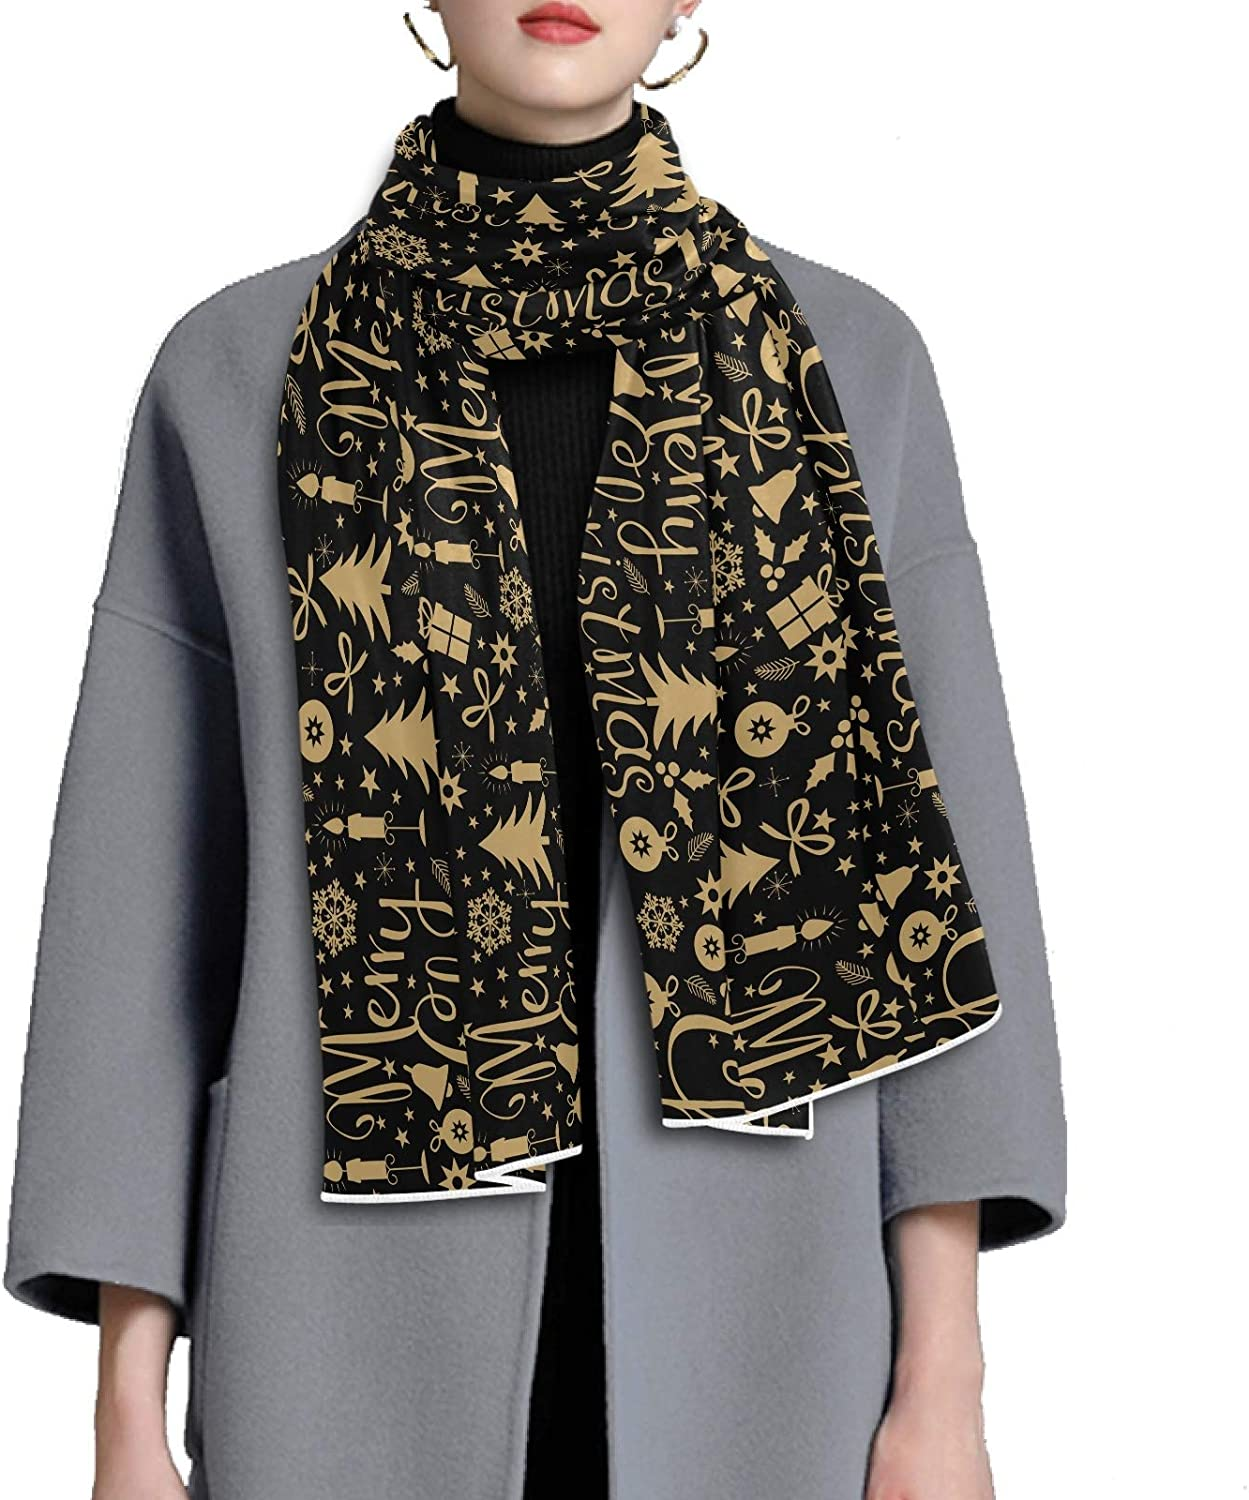 Scarf for Women and Men Christmas Deer Blanket Shawl Scarves Wraps Soft Thick Winter Large Scarves Lightweight